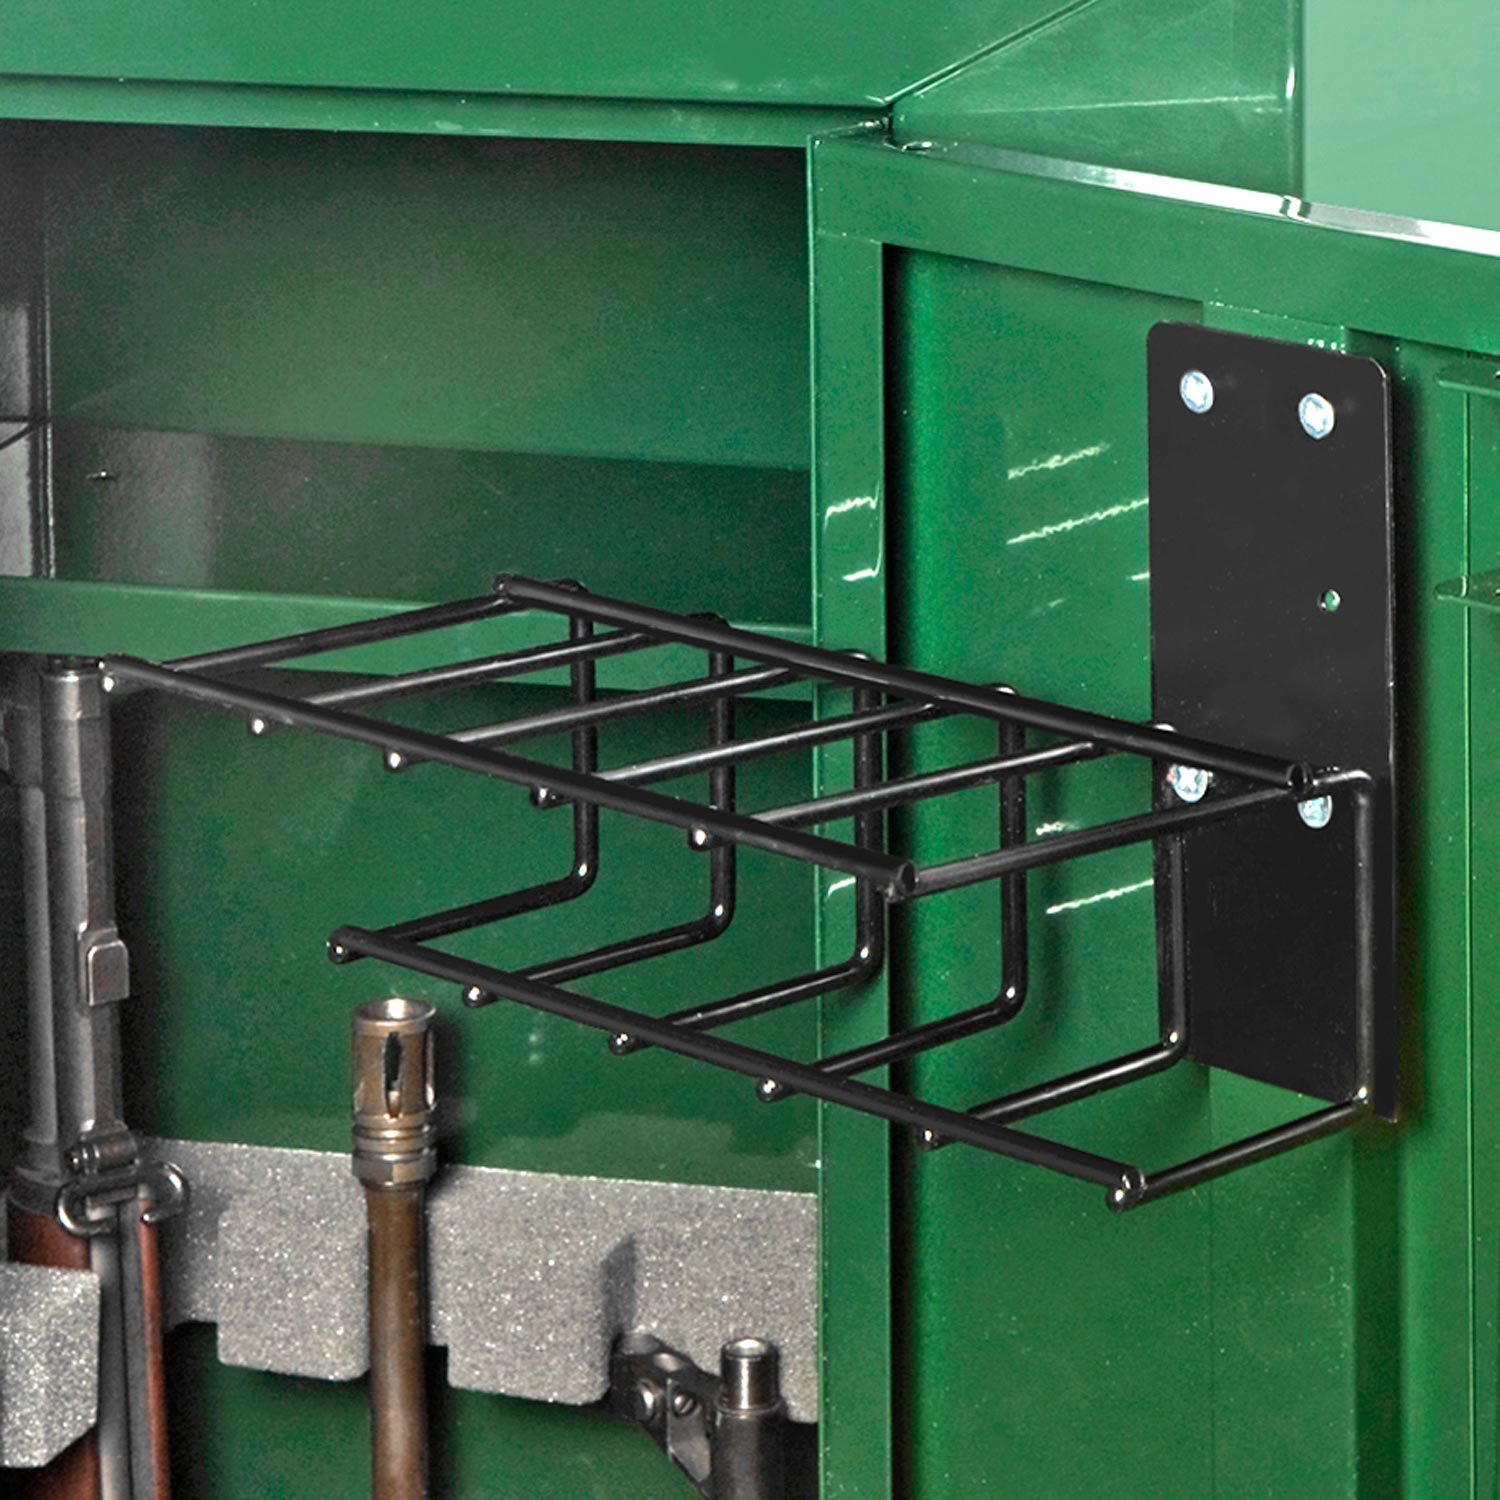 The Holster Gun Safe Rack - 5 Pistols, Black - RCKM-6024